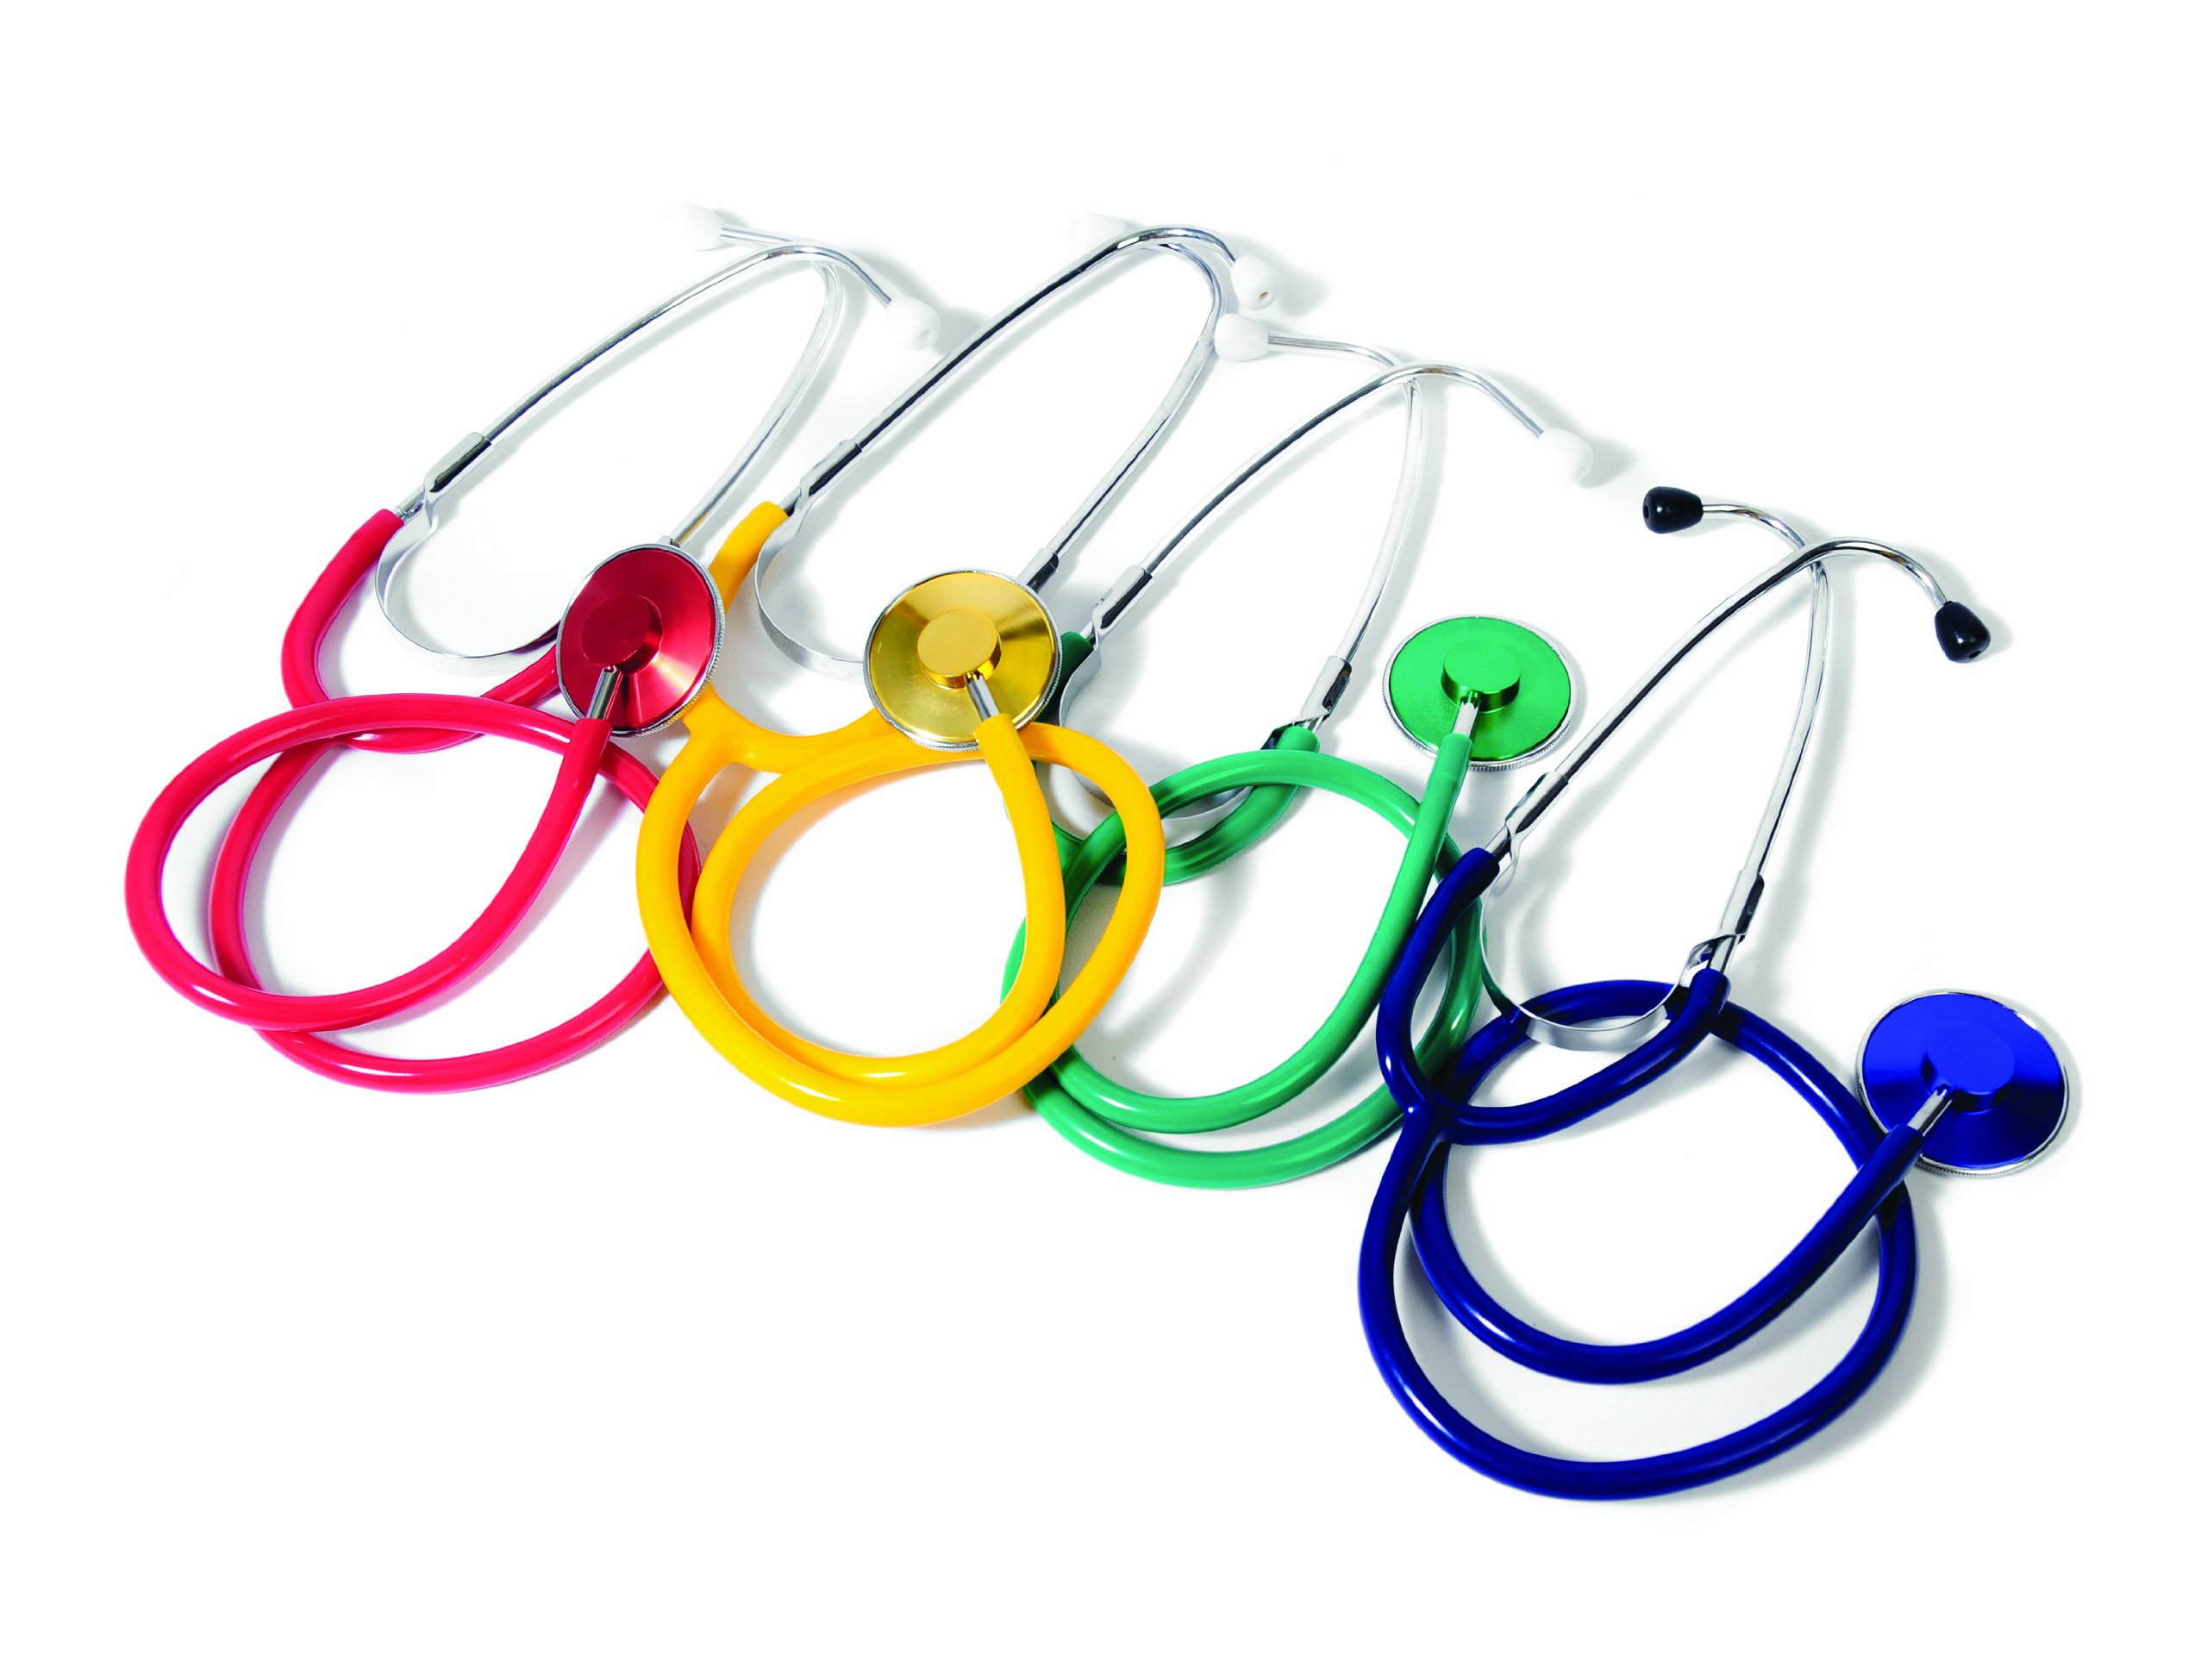 American Educational 4 Piece Stethoscope Set